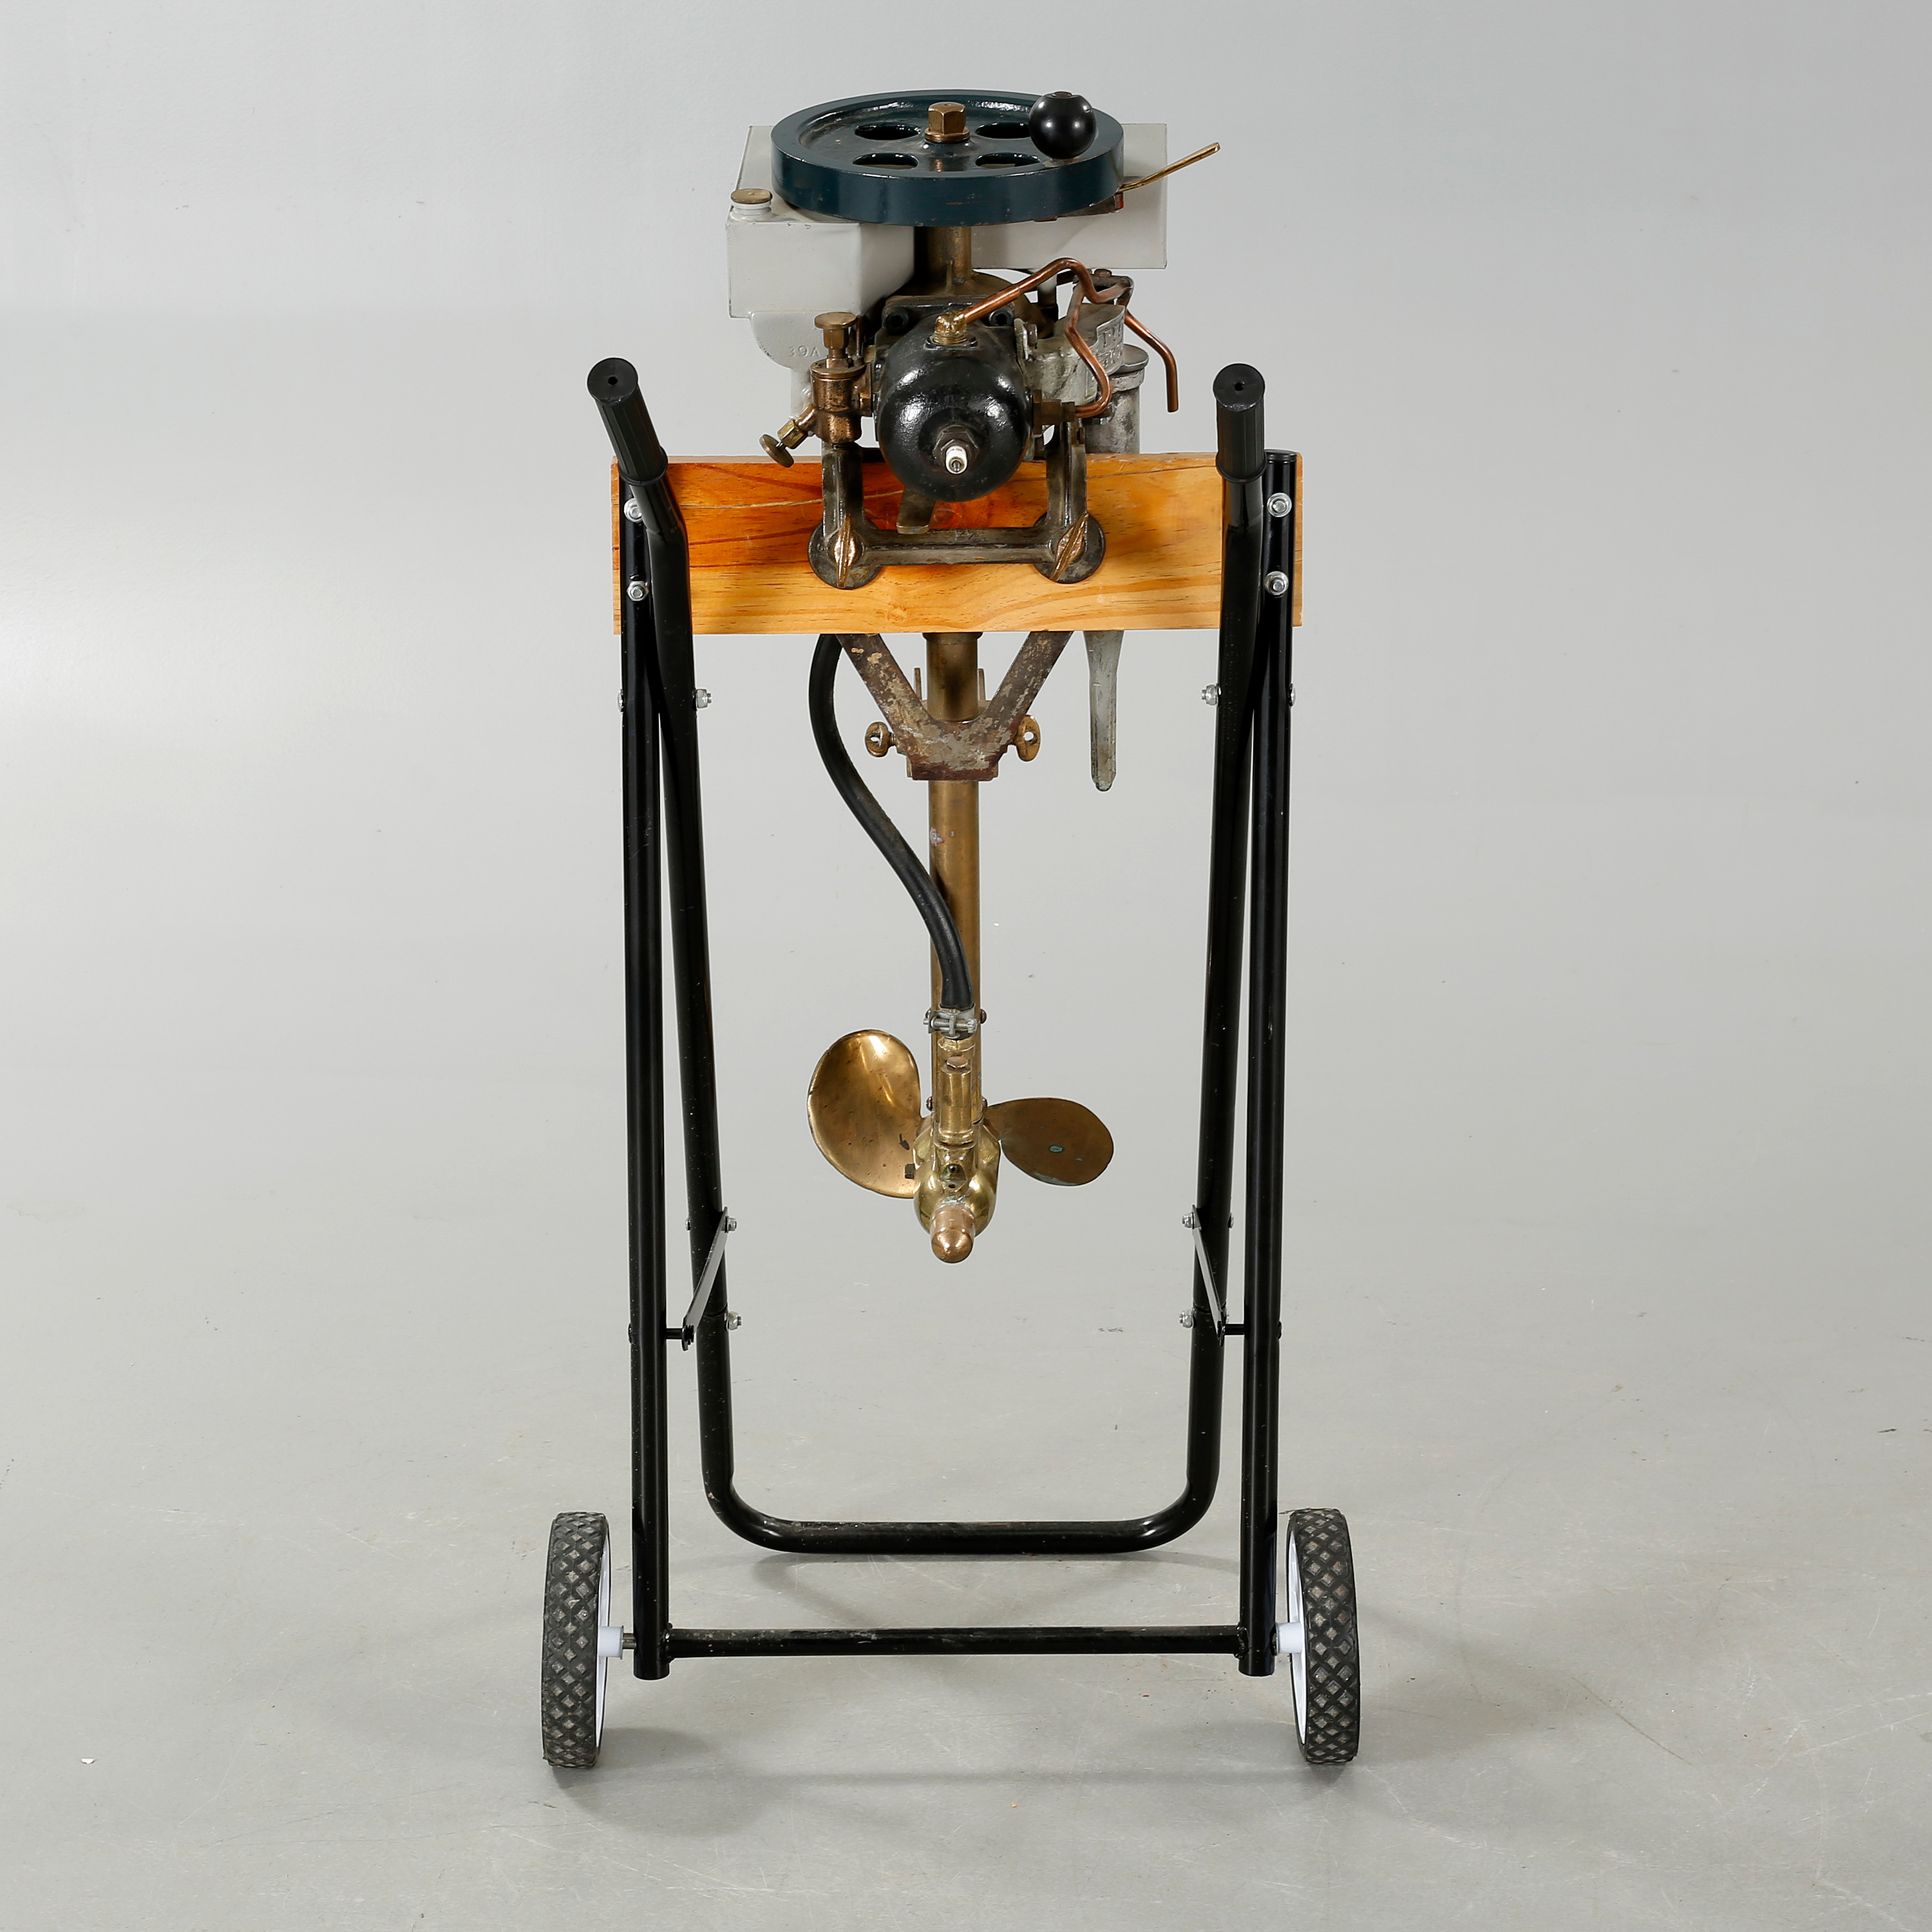 An Early 20th Century Rowboat Motor By Evinrude Detachable